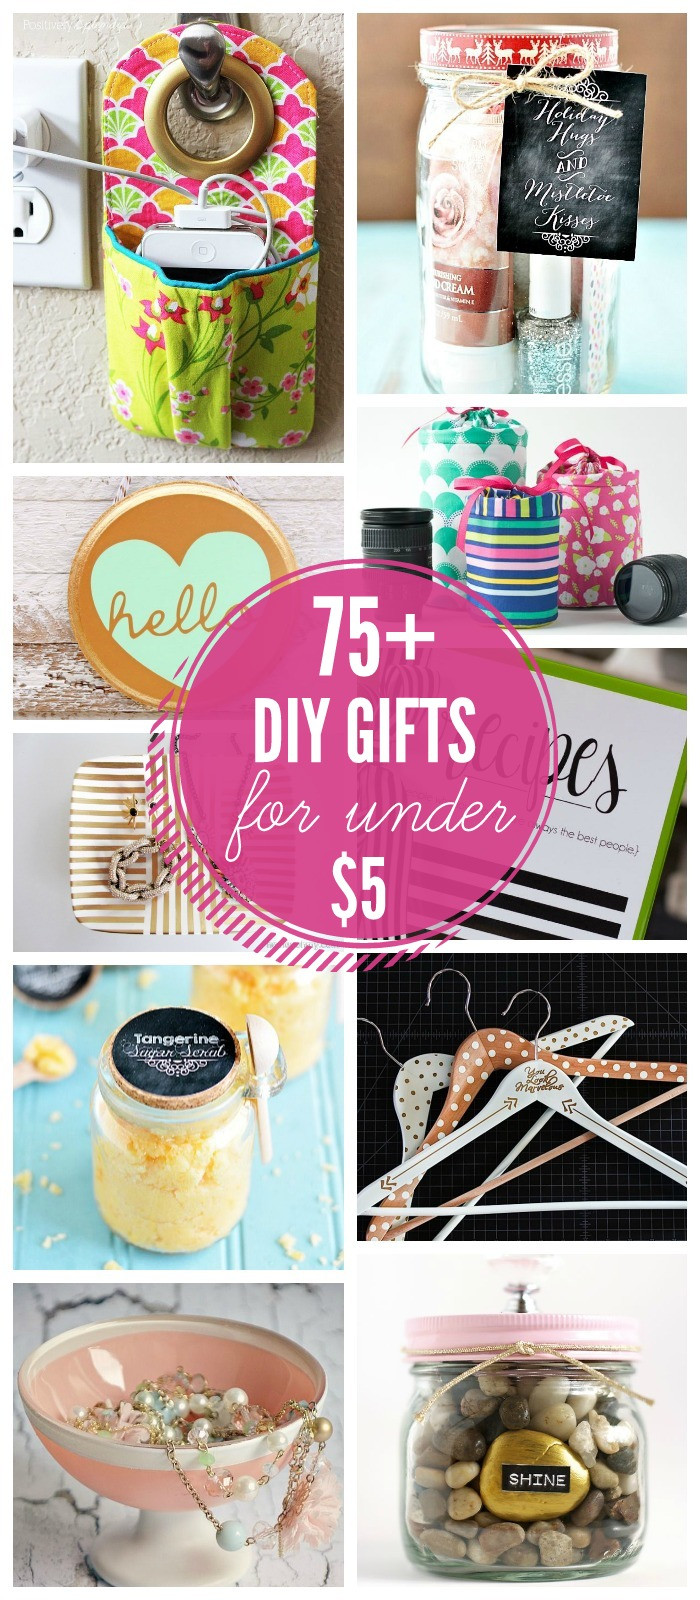 Best ideas about Unique DIY Gifts . Save or Pin 75 Gift Ideas under $5 Now.